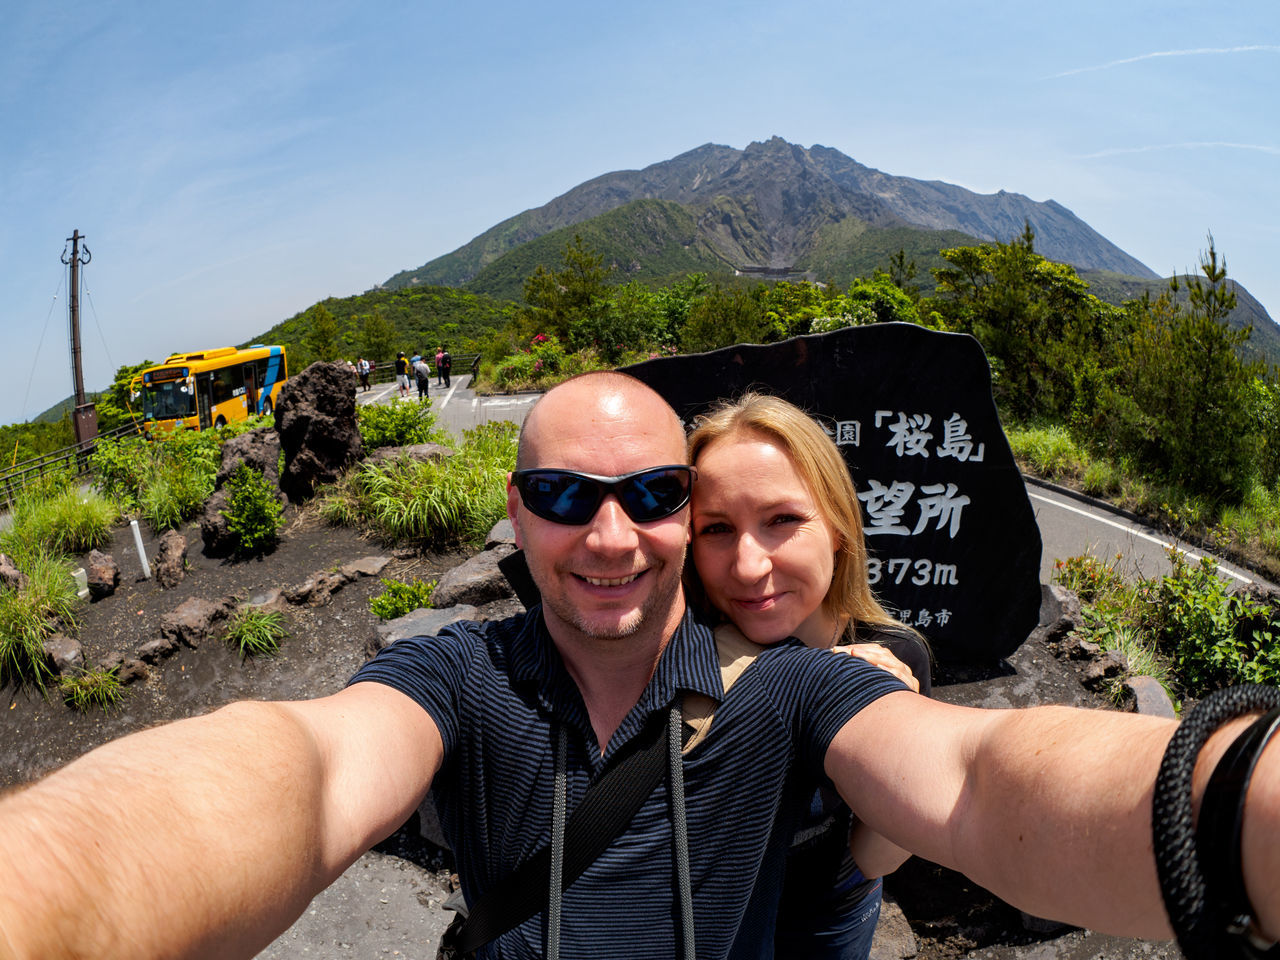 Photos from Sakurajima, Japan Beauty In Nature Day Japan KYUSHU Leisure Activity Lifestyles Looking At Camera Love Mountain Nature Outdoors Photographing Photography Themes Portrait Real People Scenics Self Portrait Photography Selfie Smiling Togetherness Two People Vacations Women Young Adult Young Women